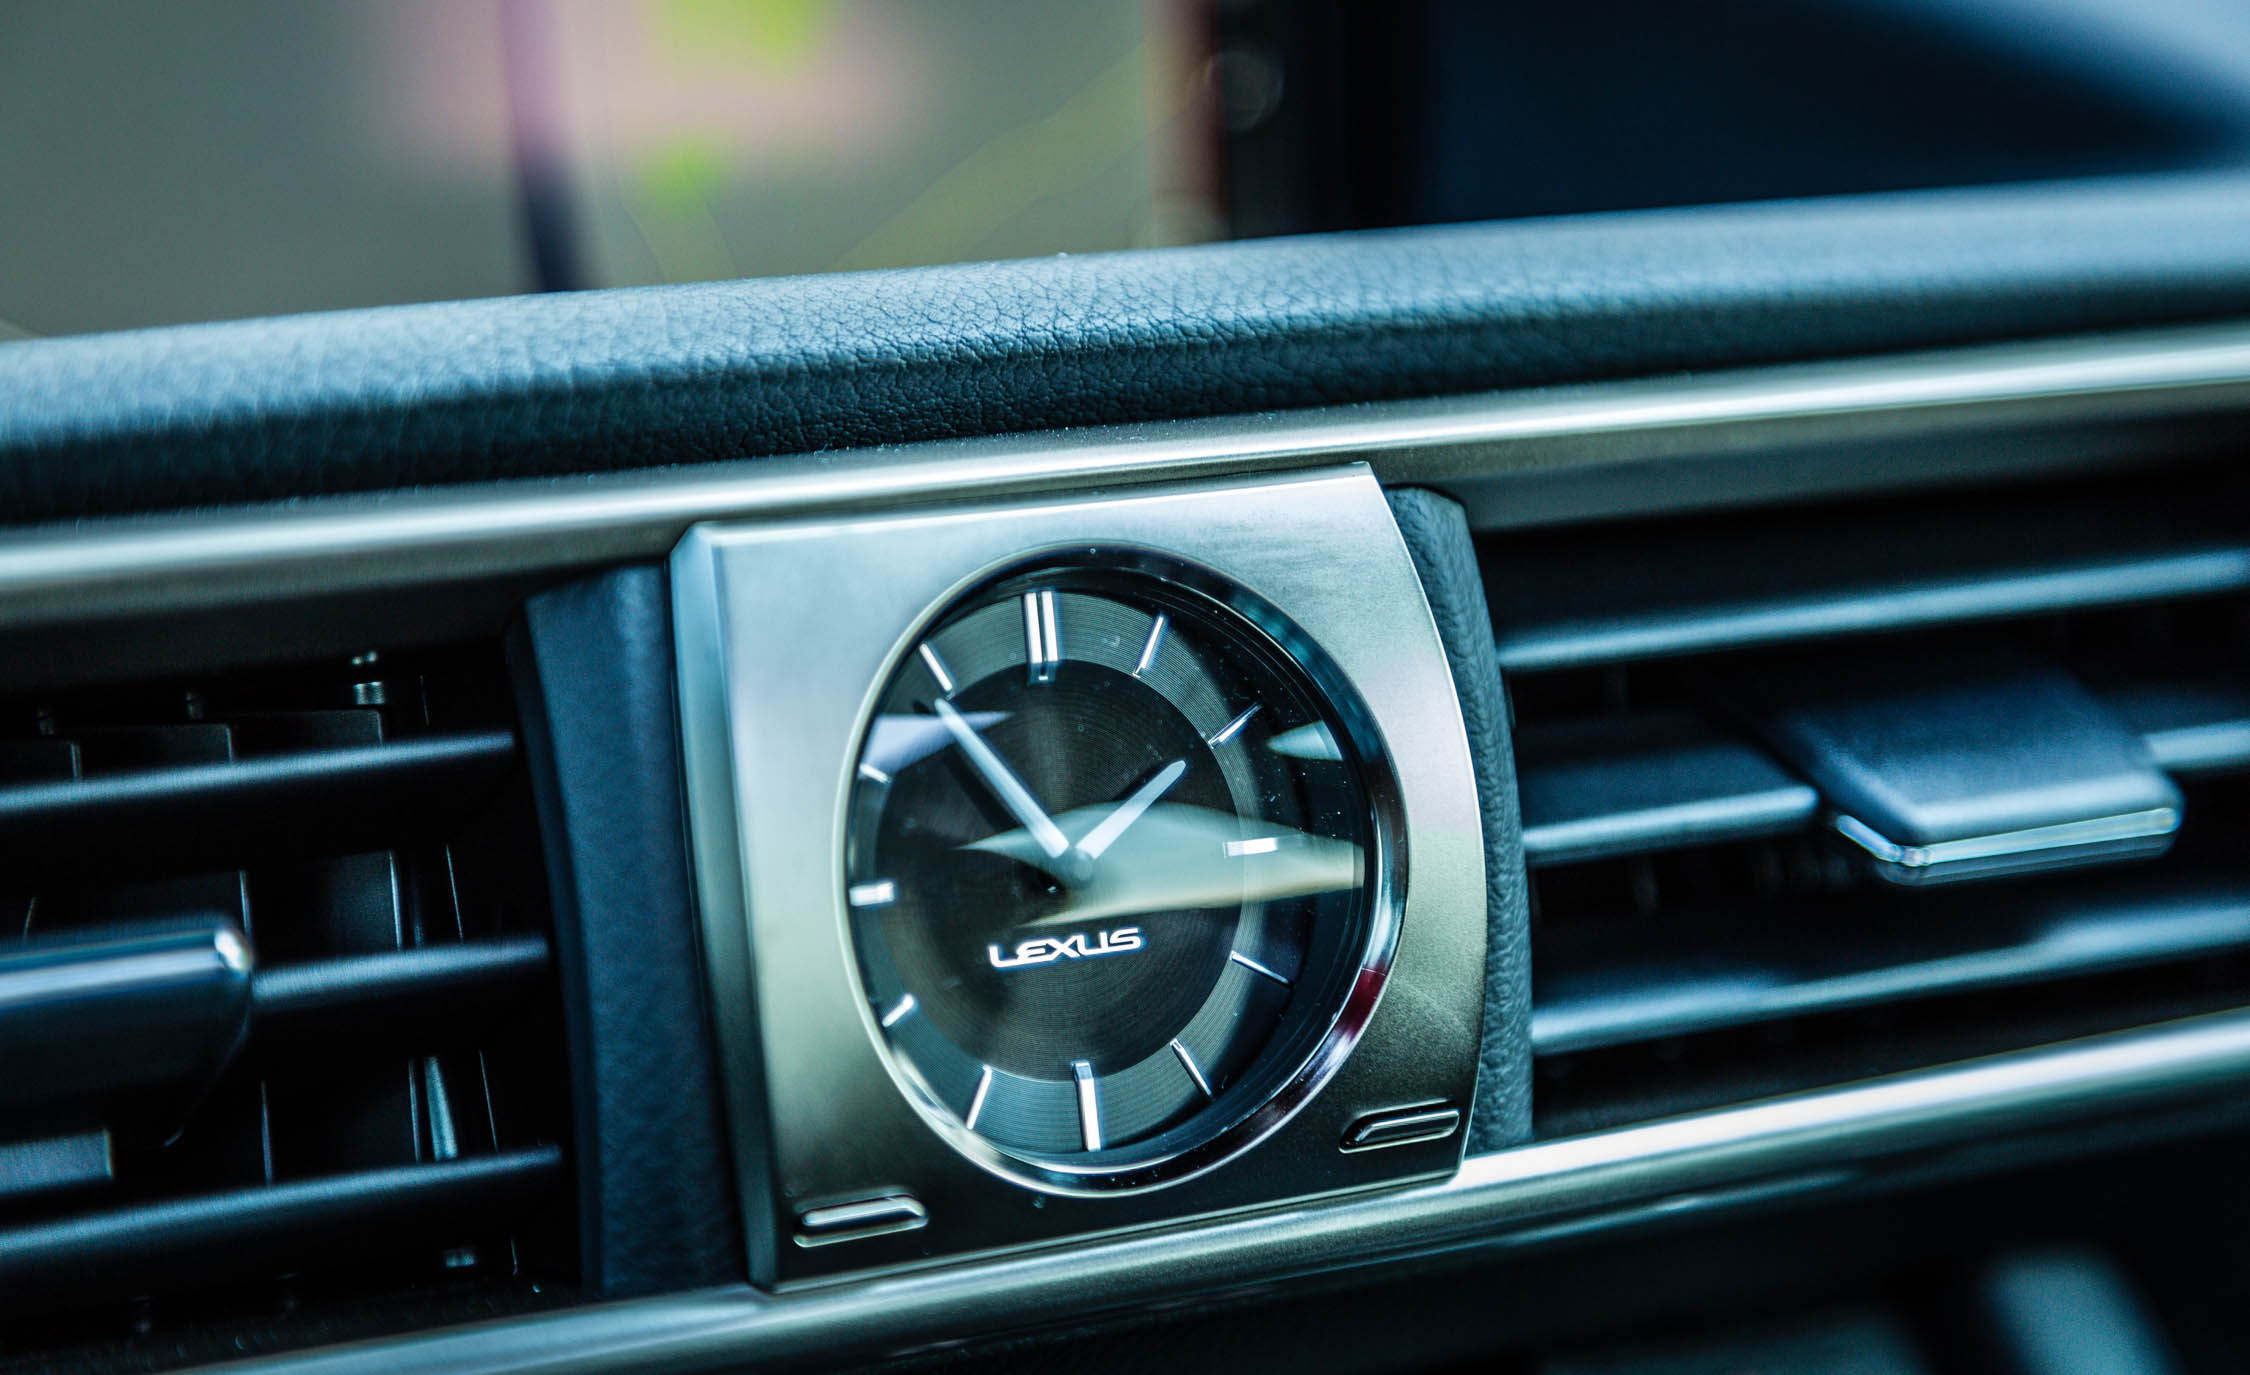 2017 Lexus IS 200t F Sport Interior View Dash Clock (Photo 10 of 29)